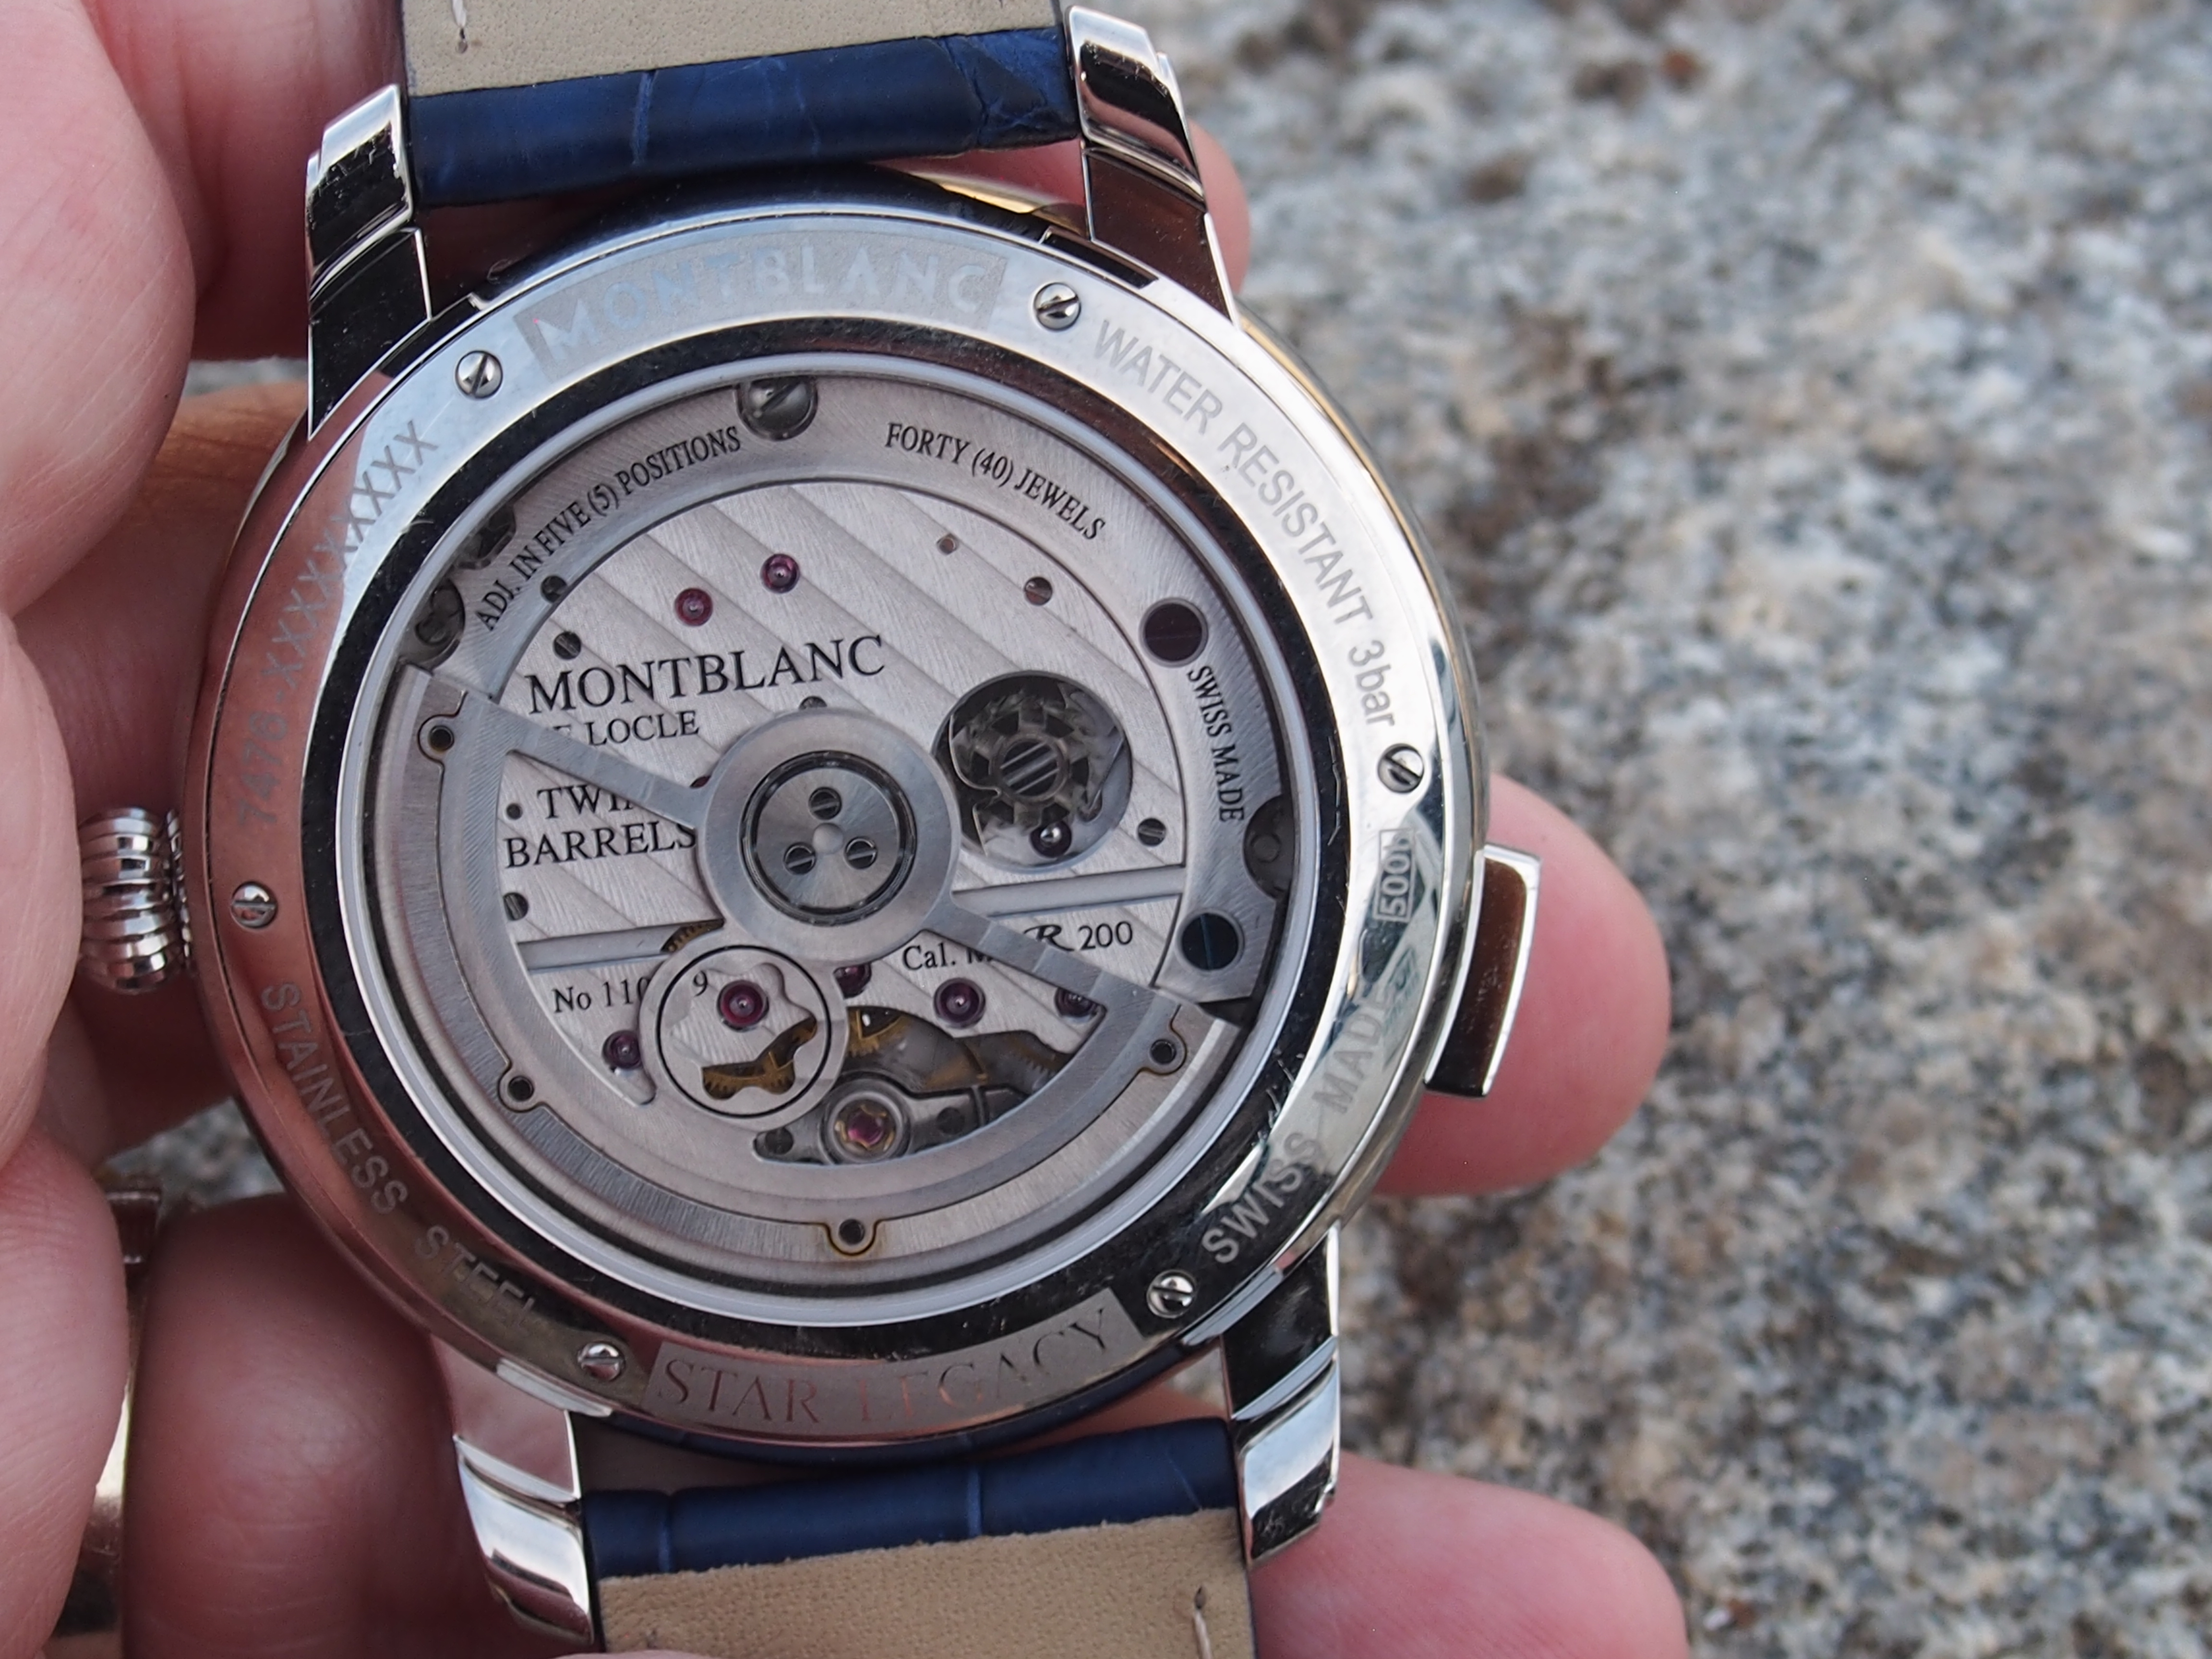 The Montblanc Star Legacy Nicolas Rieussec Chronograph has twin barrels and offers 72 hours of power reserve.